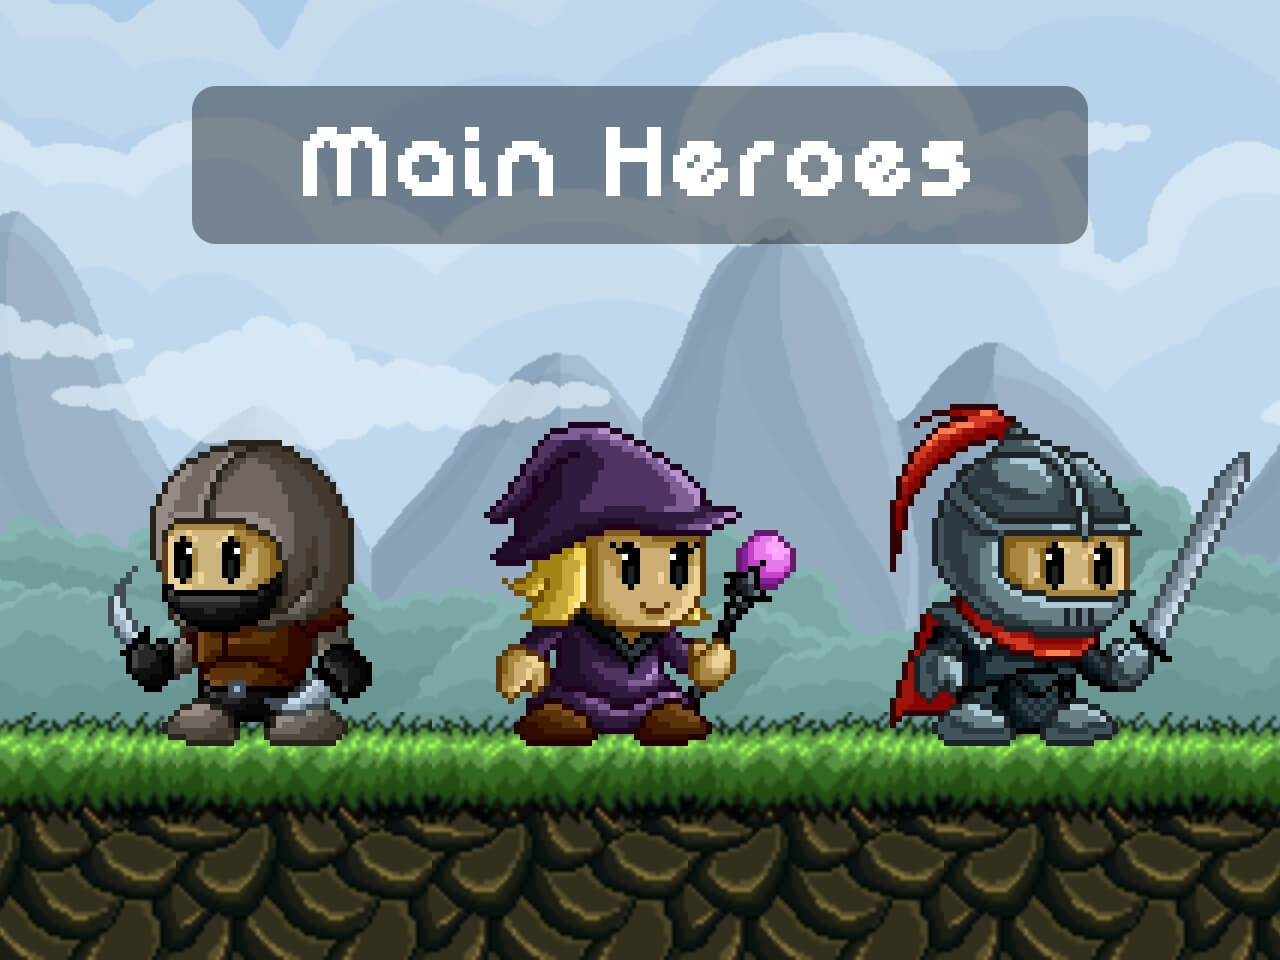 Fantasy Game Main Heroes Pixel Art by 2D Game Assets on Dribbble